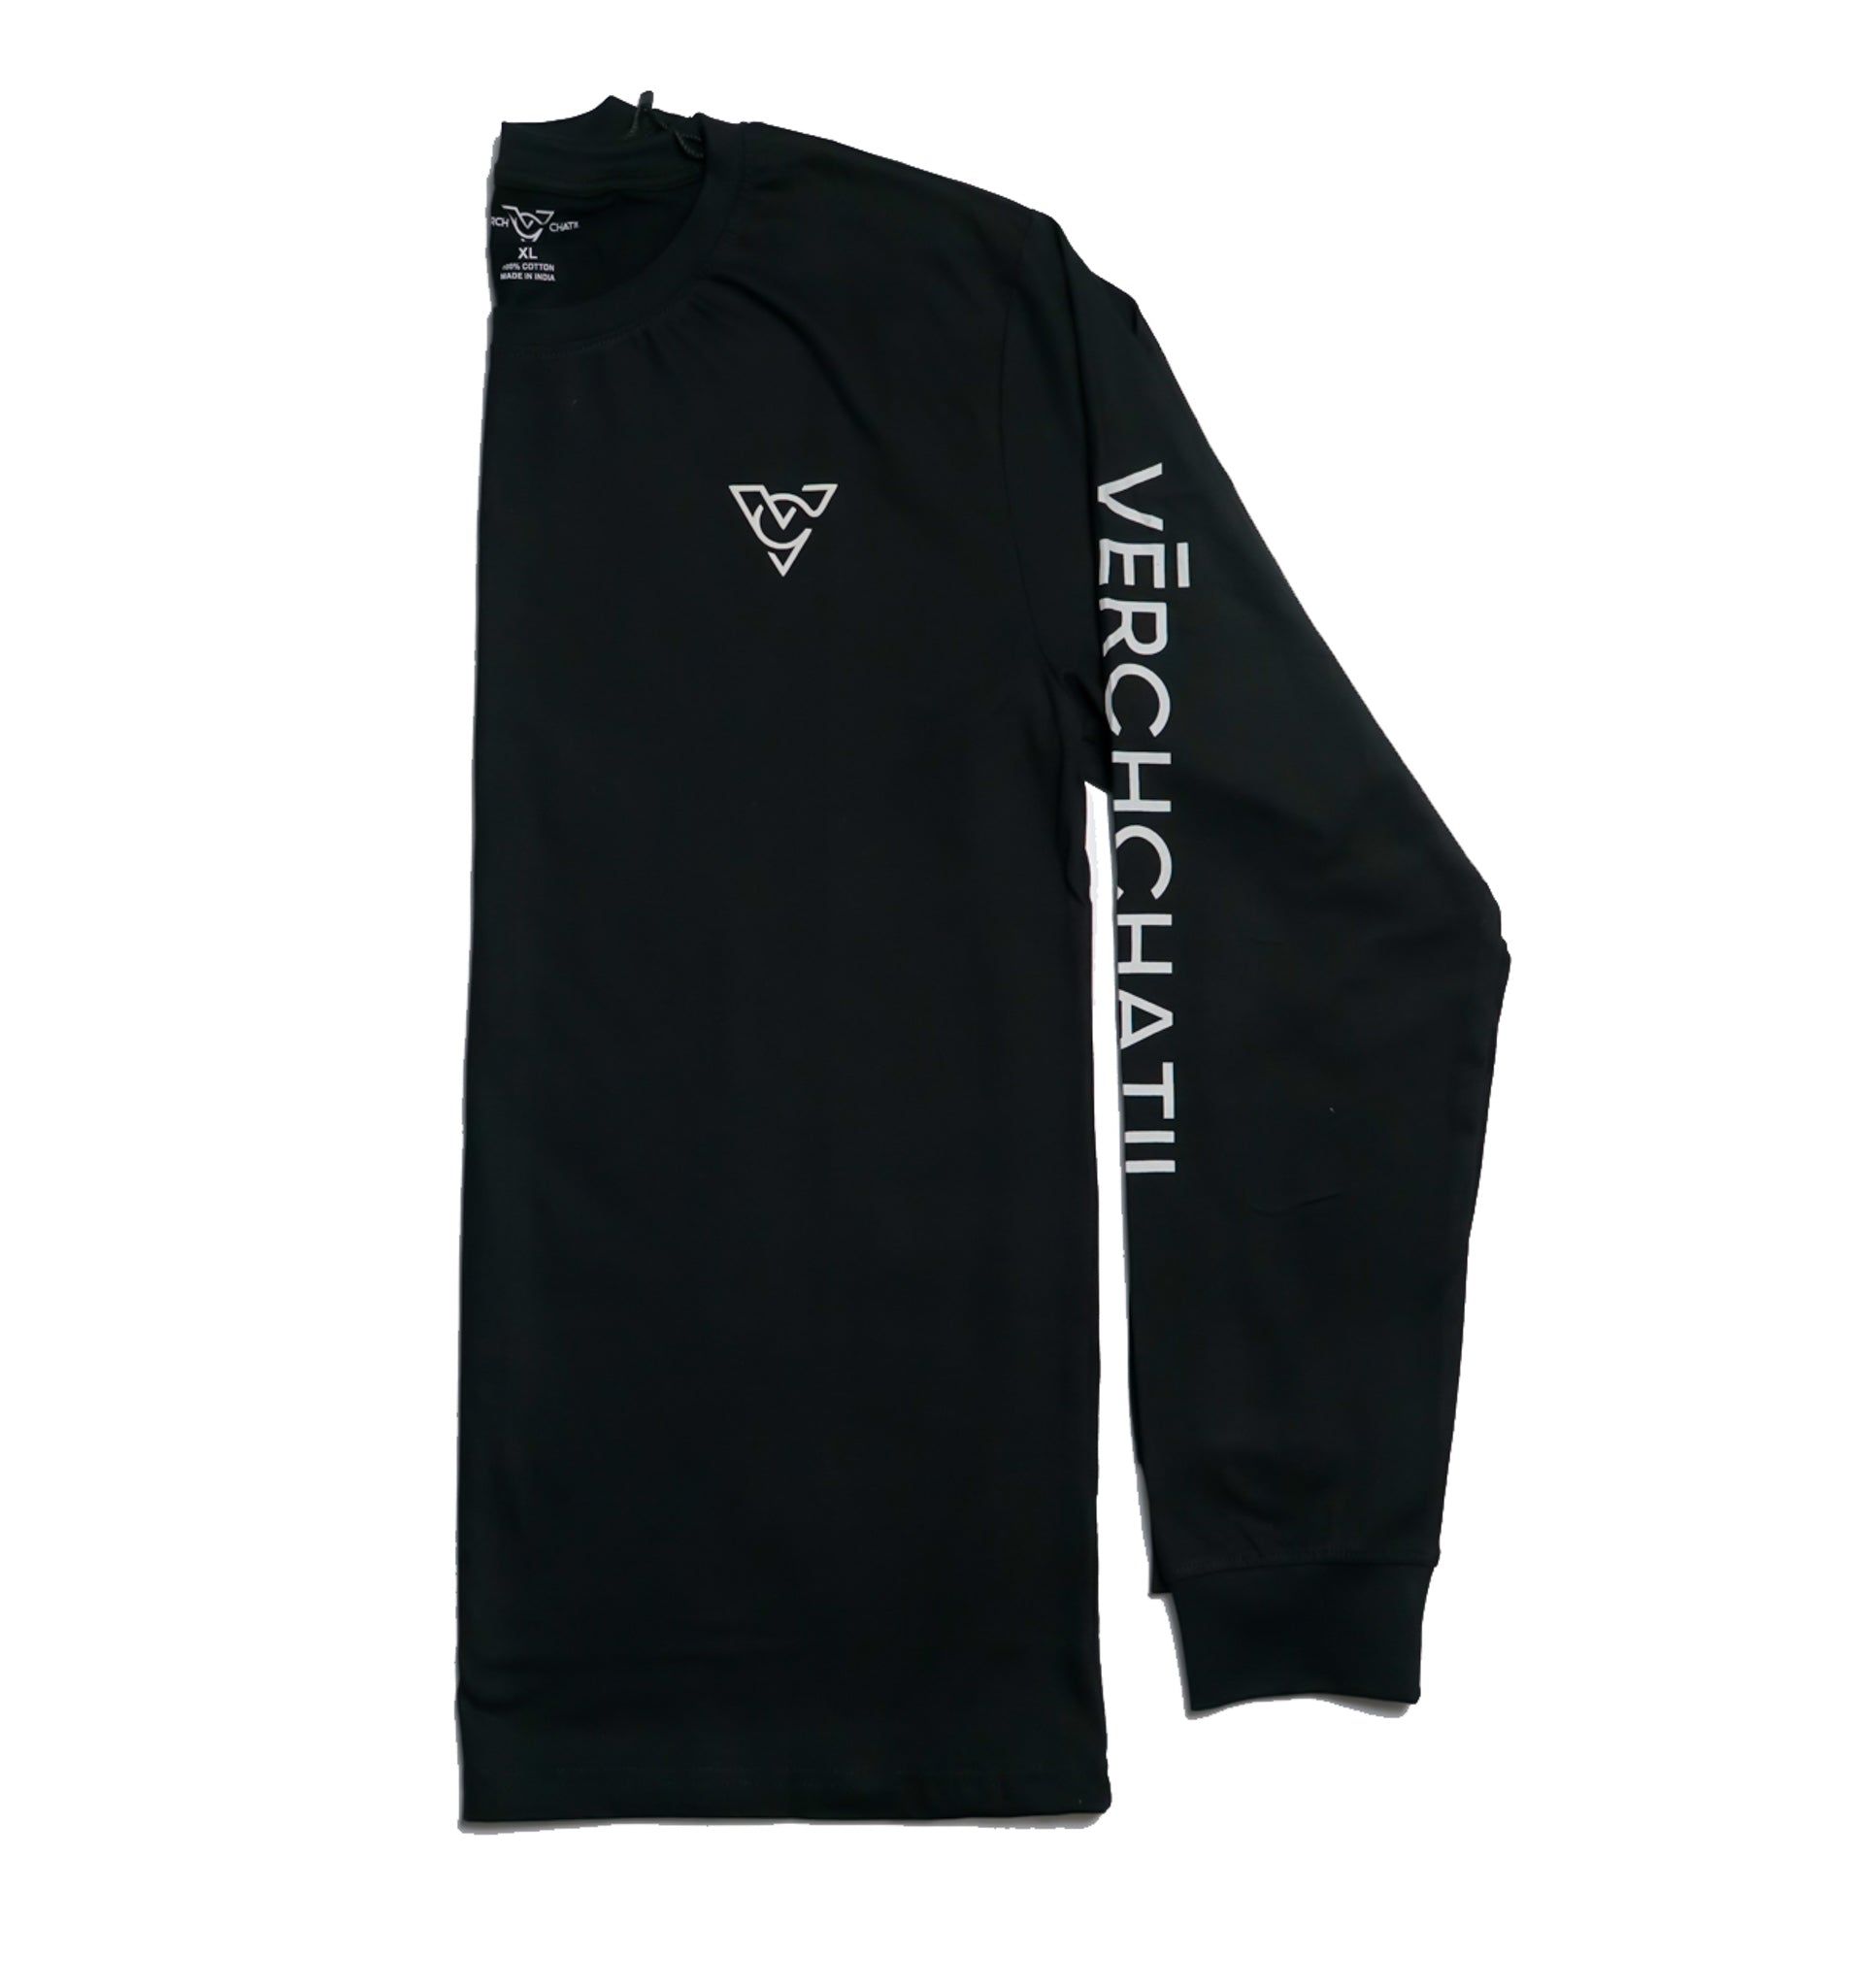 Verch Black Long Sleeve Tshirt